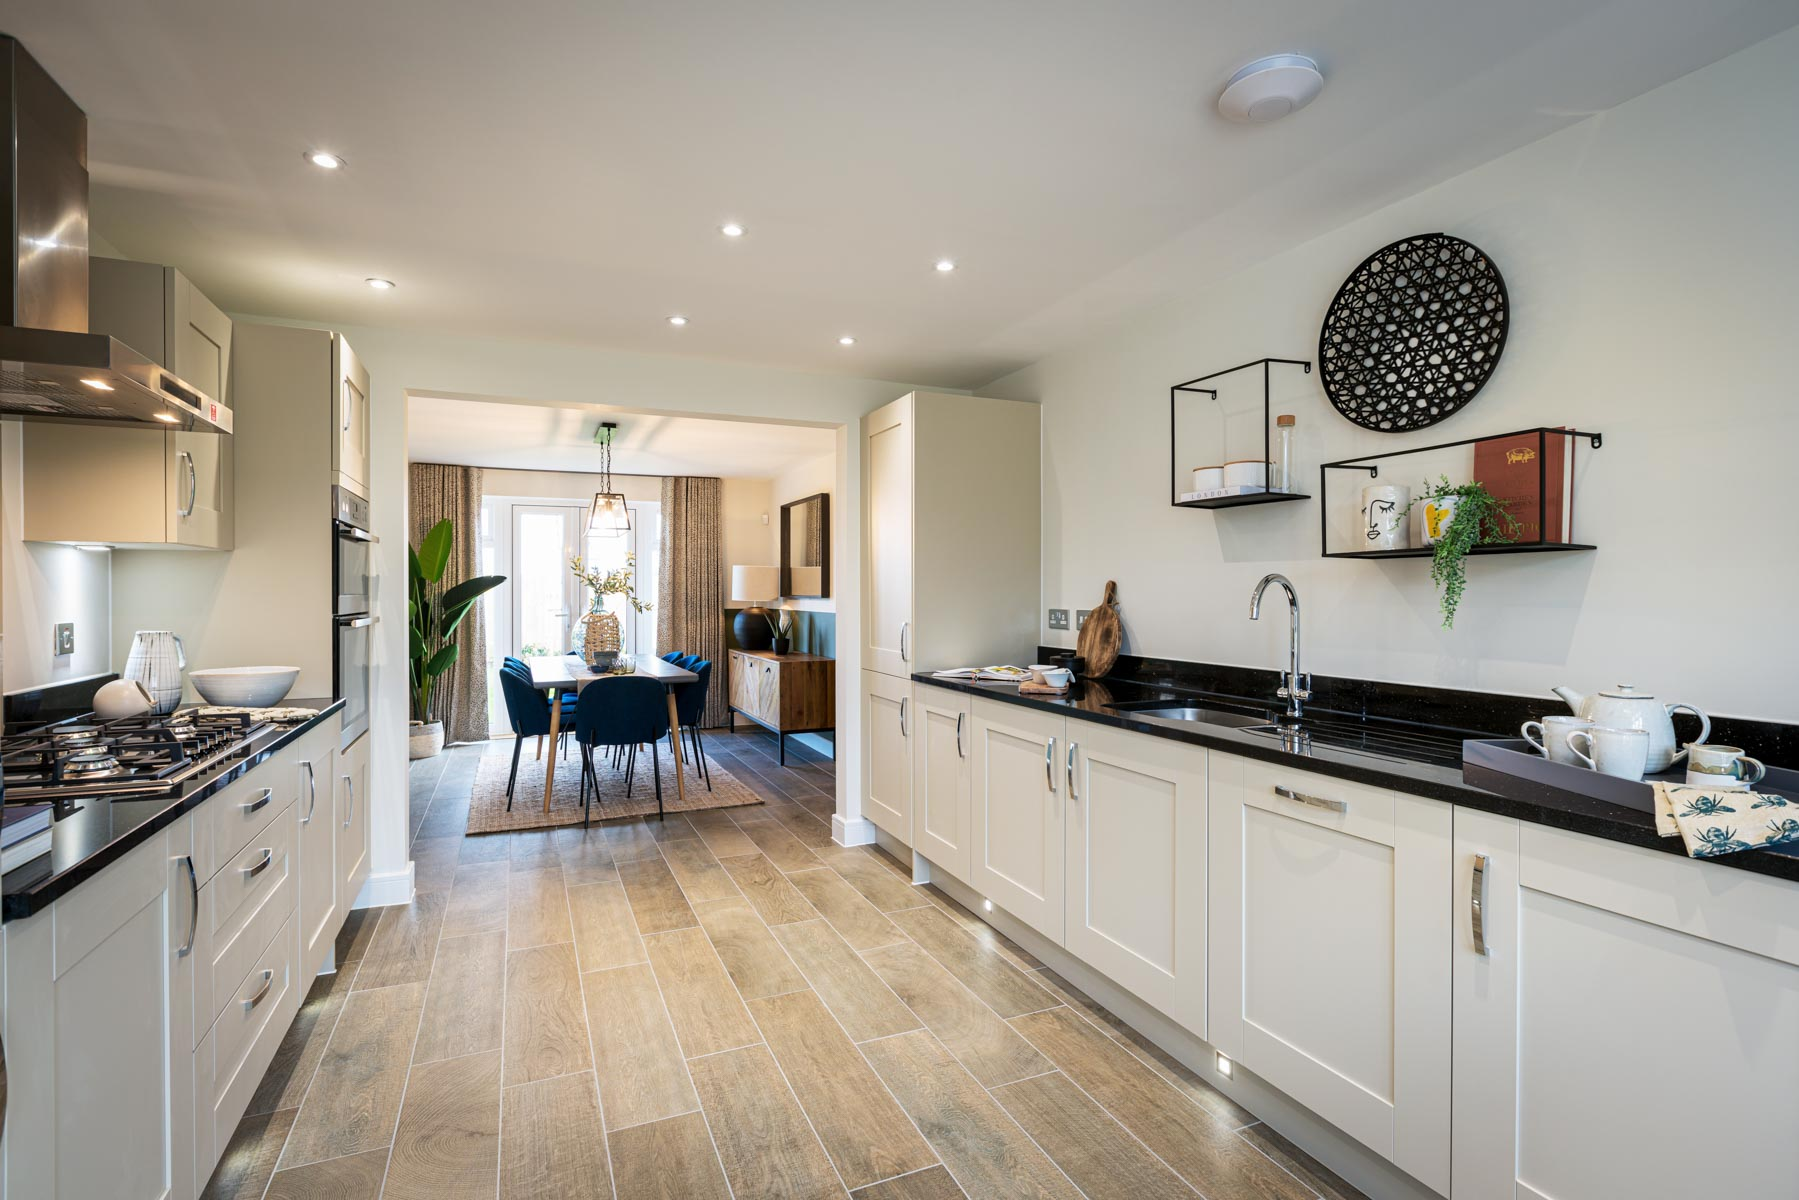 Bampton_Meadows_Marford_Kitchen1_Web_1800x1200